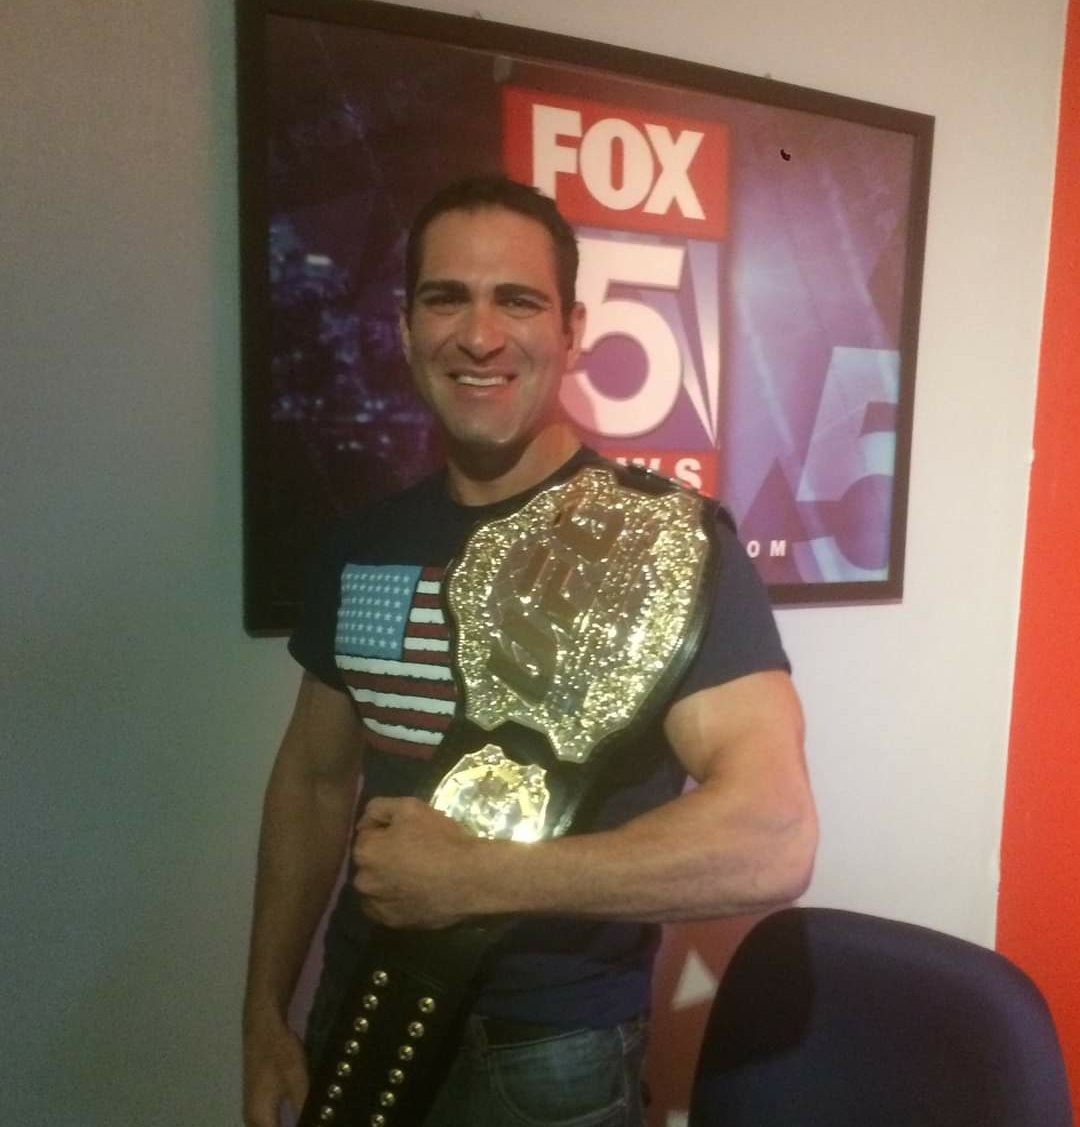 Israel Joffe with the UFC title